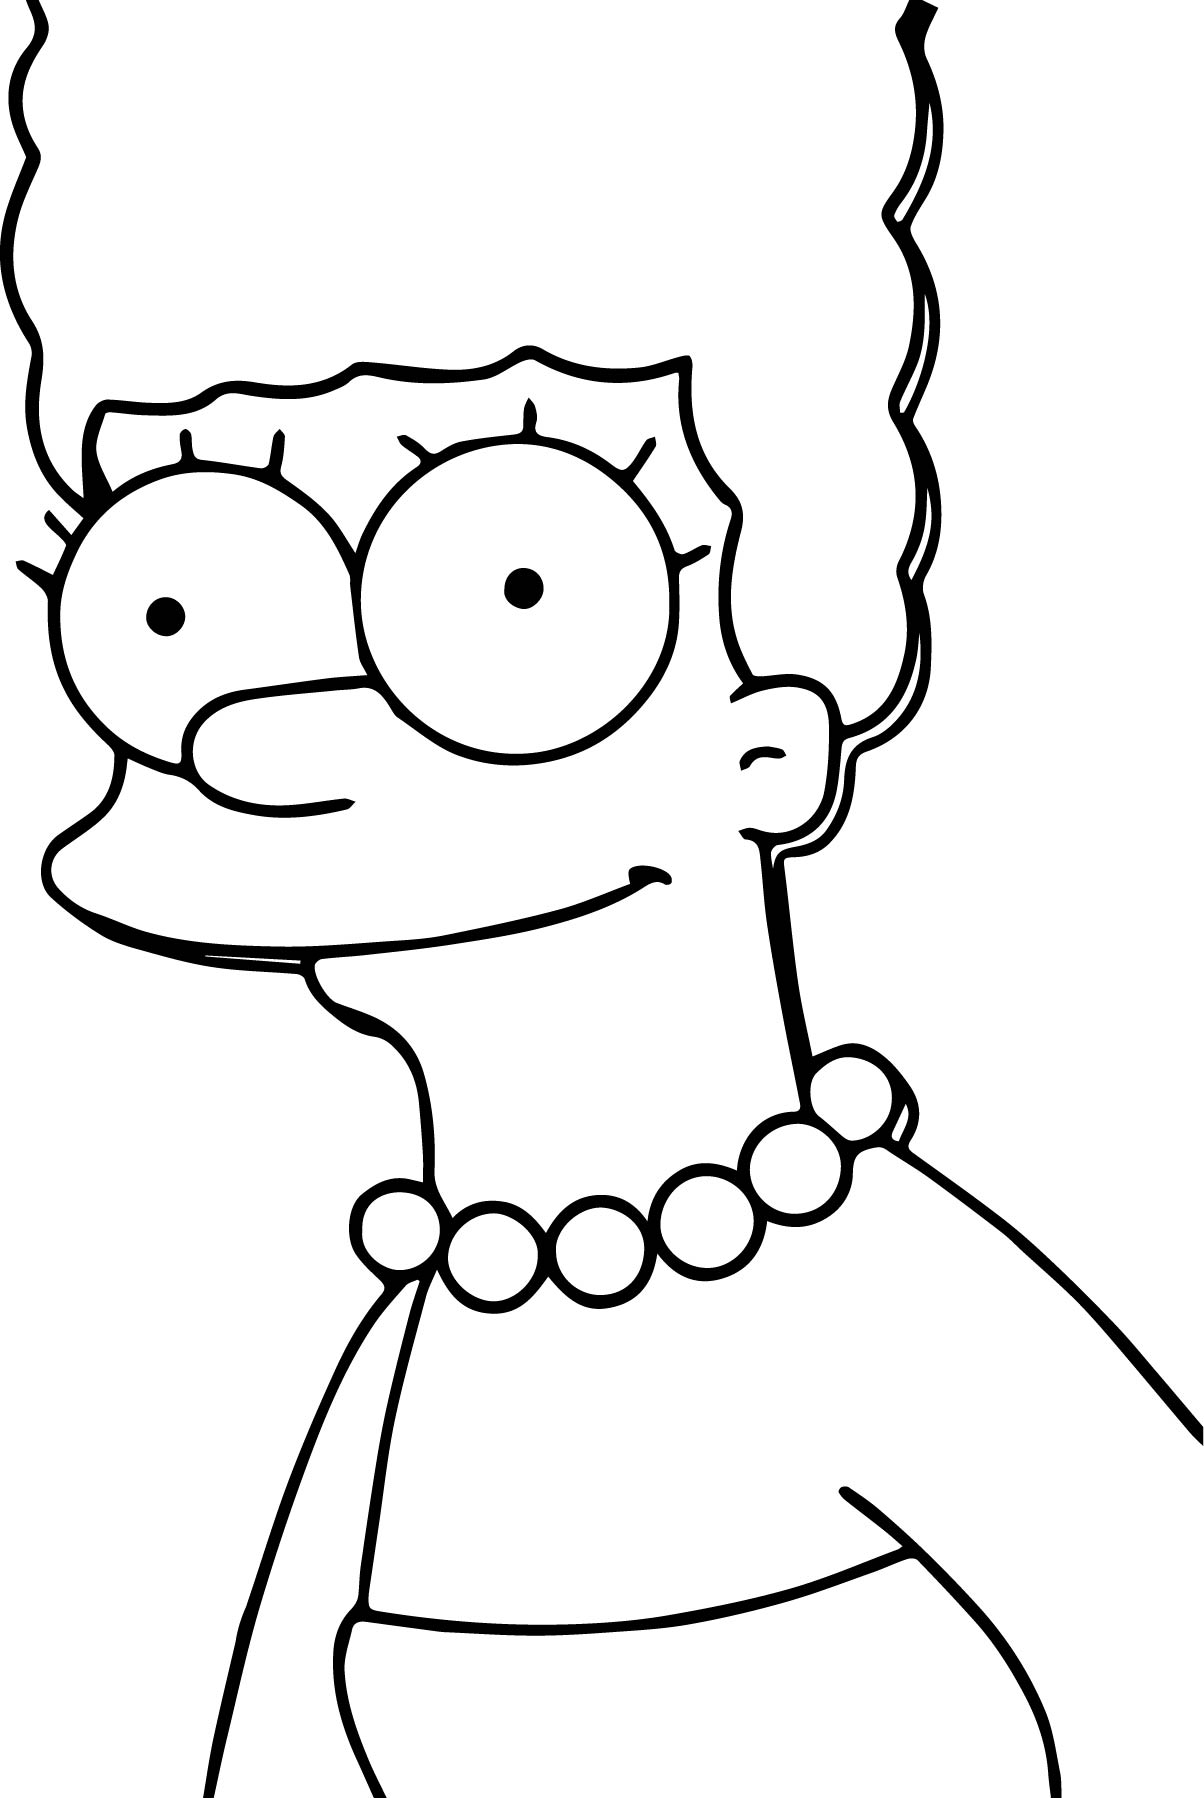 simpsons coloring page - marge the simpsons coloring page